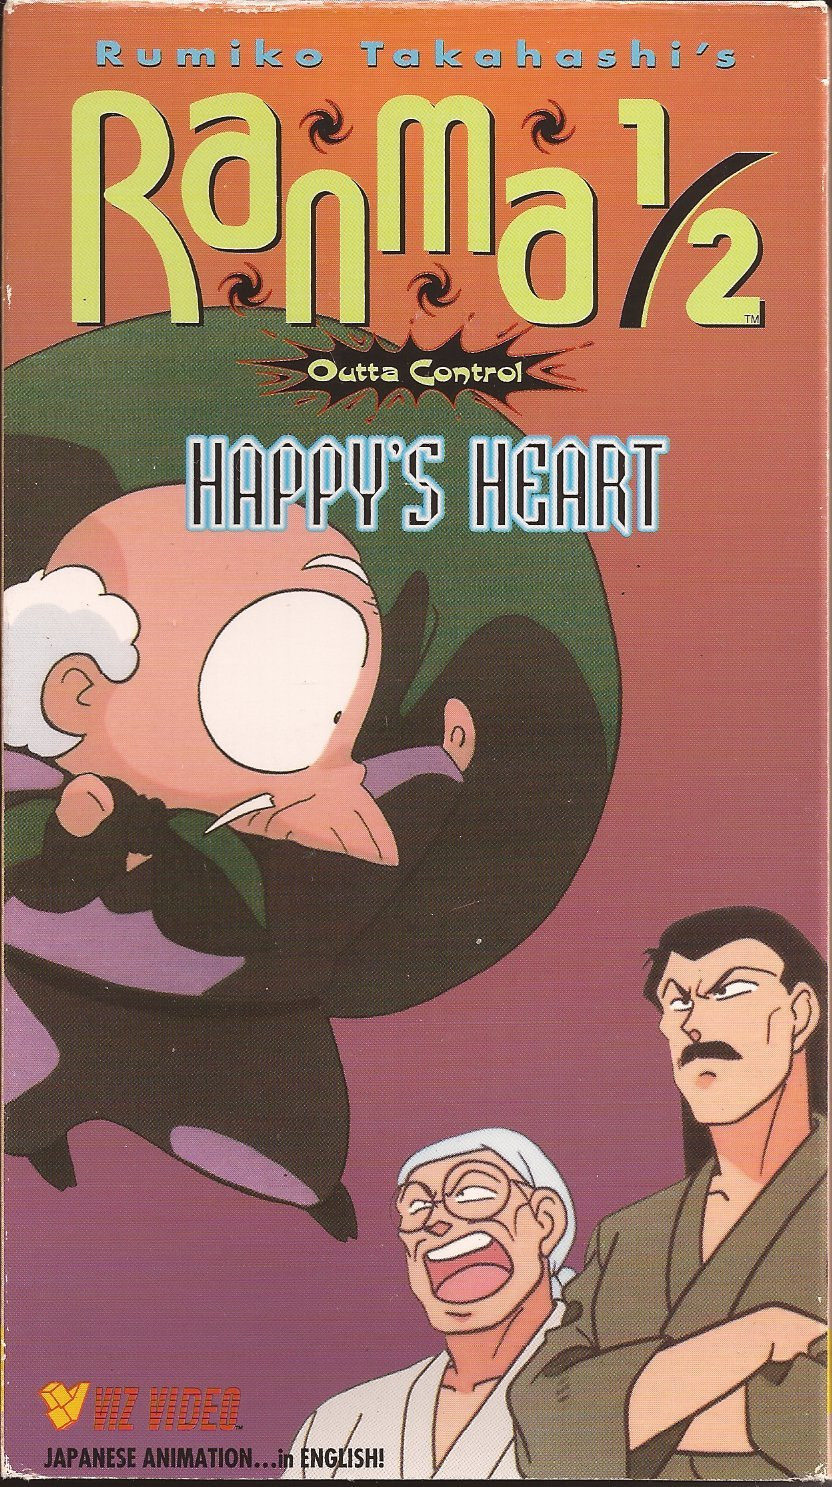 Ranma 1/2 - Outta Control, Vol. 7: Happy's Heart VHS